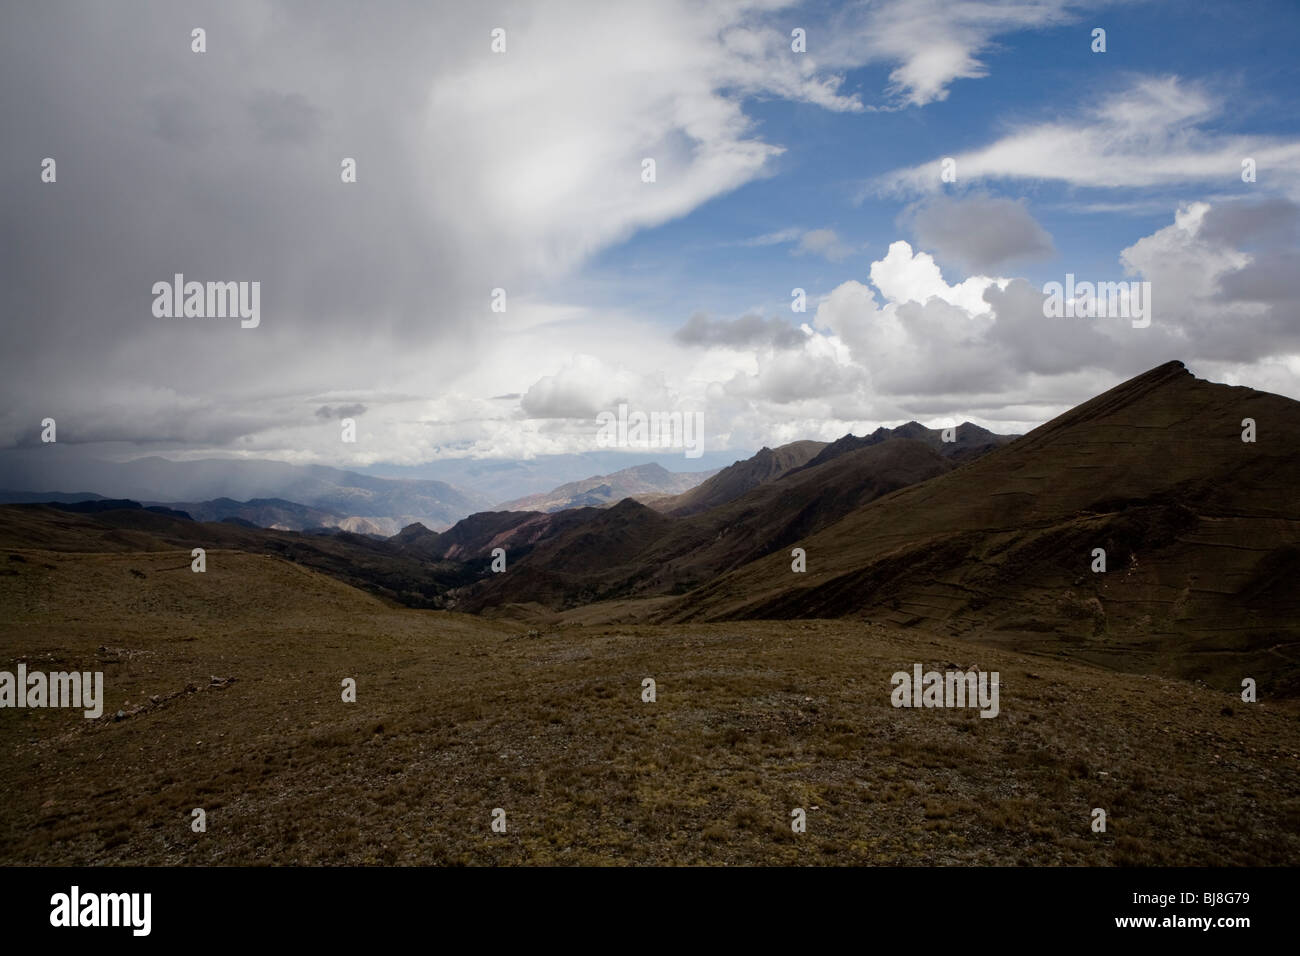 Mountains and sky in Bolivia, north of lake titikaka, south america - Stock Image